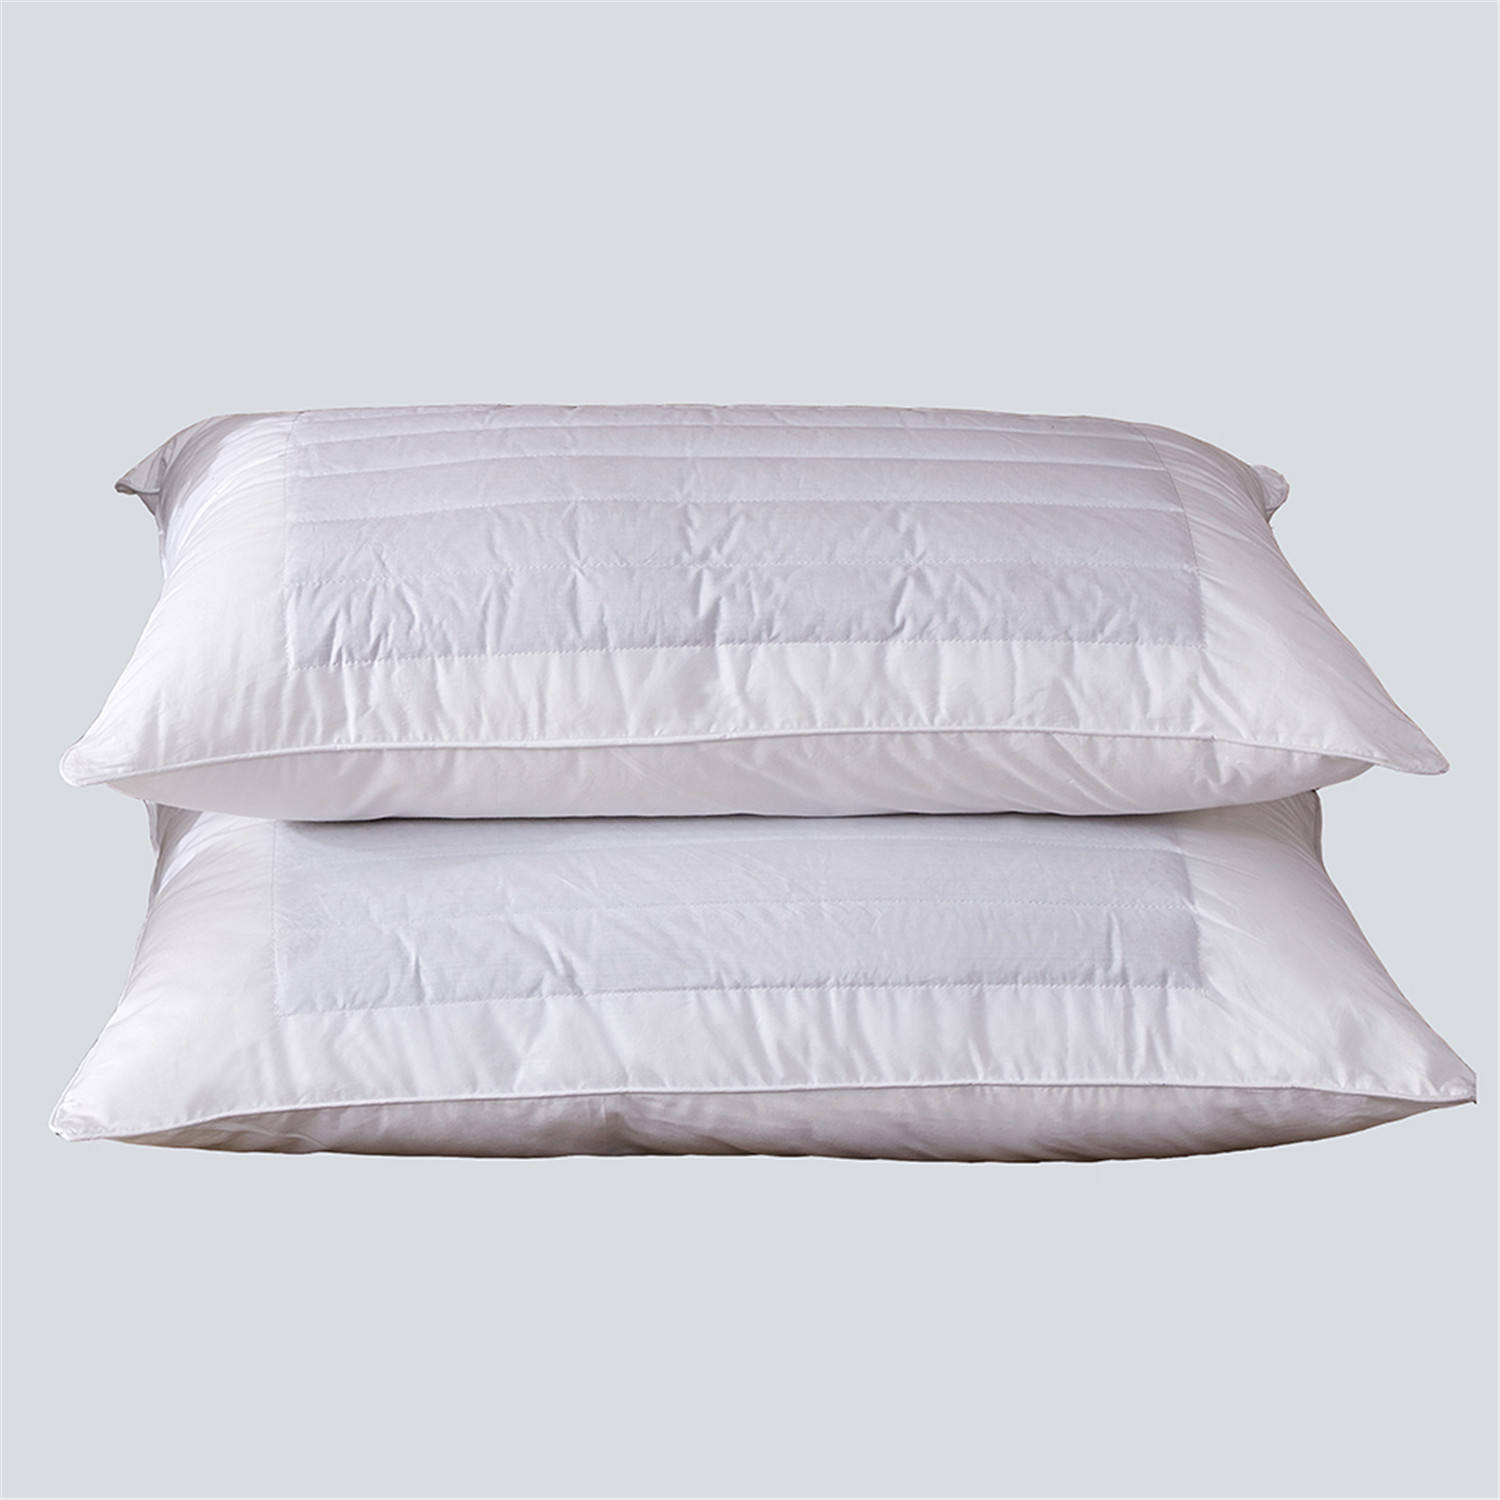 Custom High quality Luxury white hotel 100% natural cotton feather bed pillow with soft and comfortable sleeping